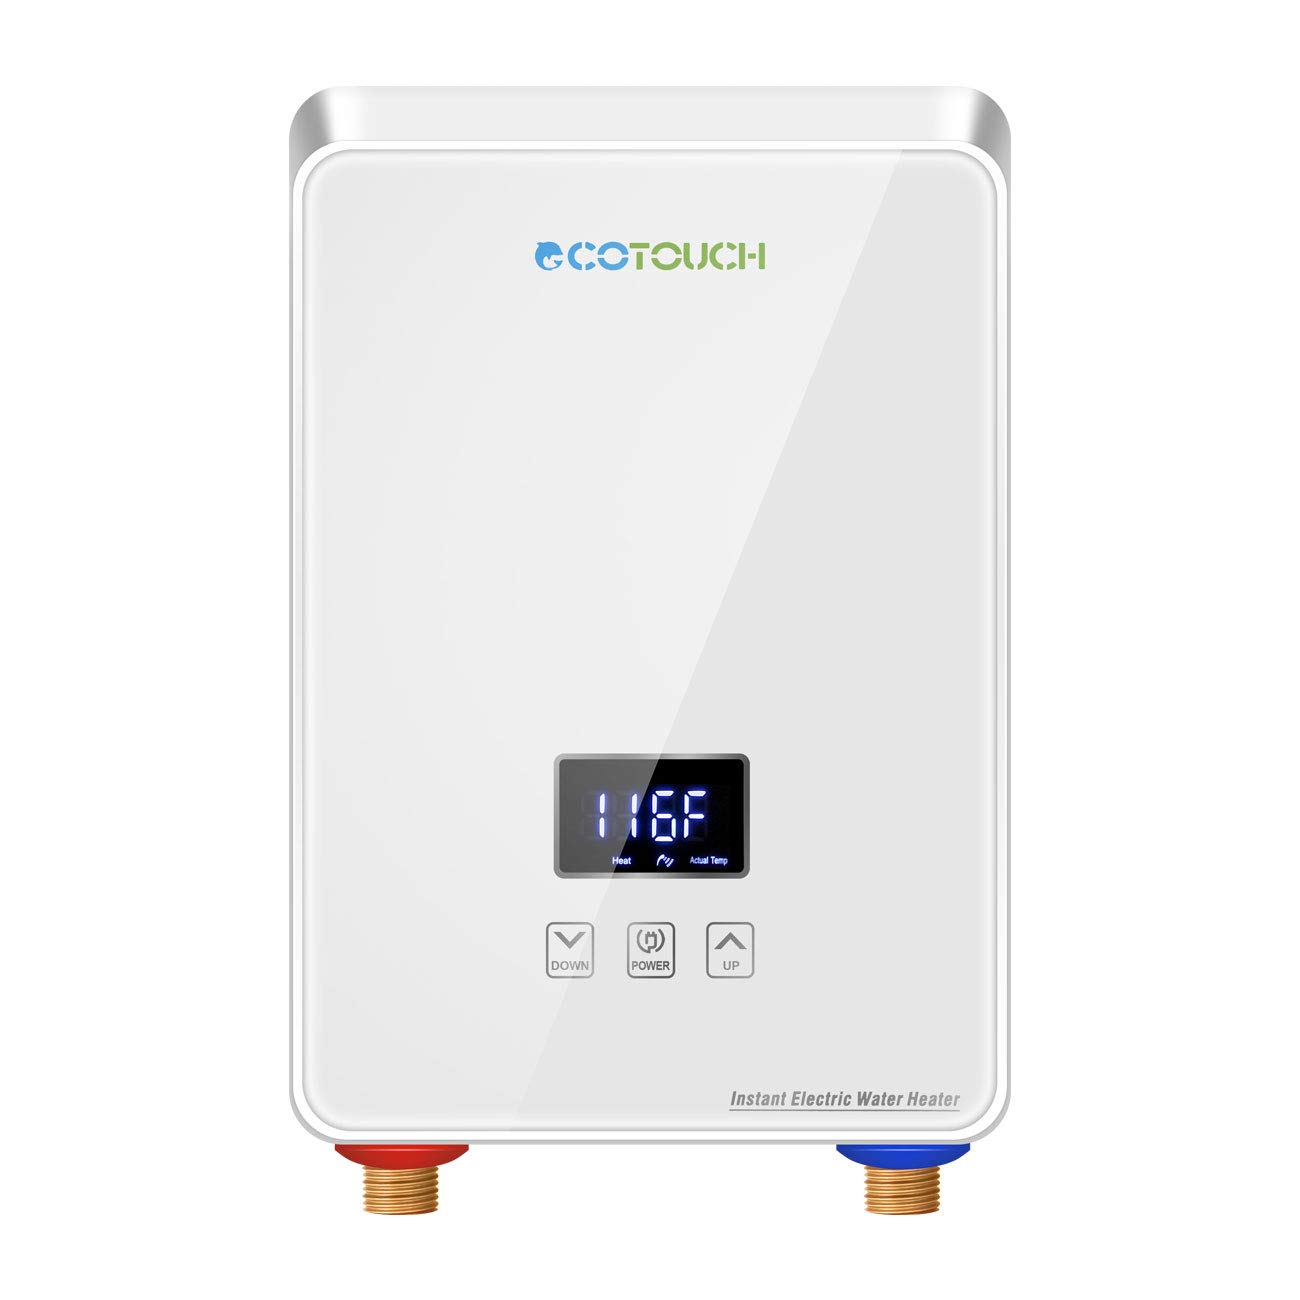 ECOTOUCH Electric Tankless Water Heater Point-of-Use Hot Water Heater Digital Display for Energy Efficiency 5.5kW at 240V, White